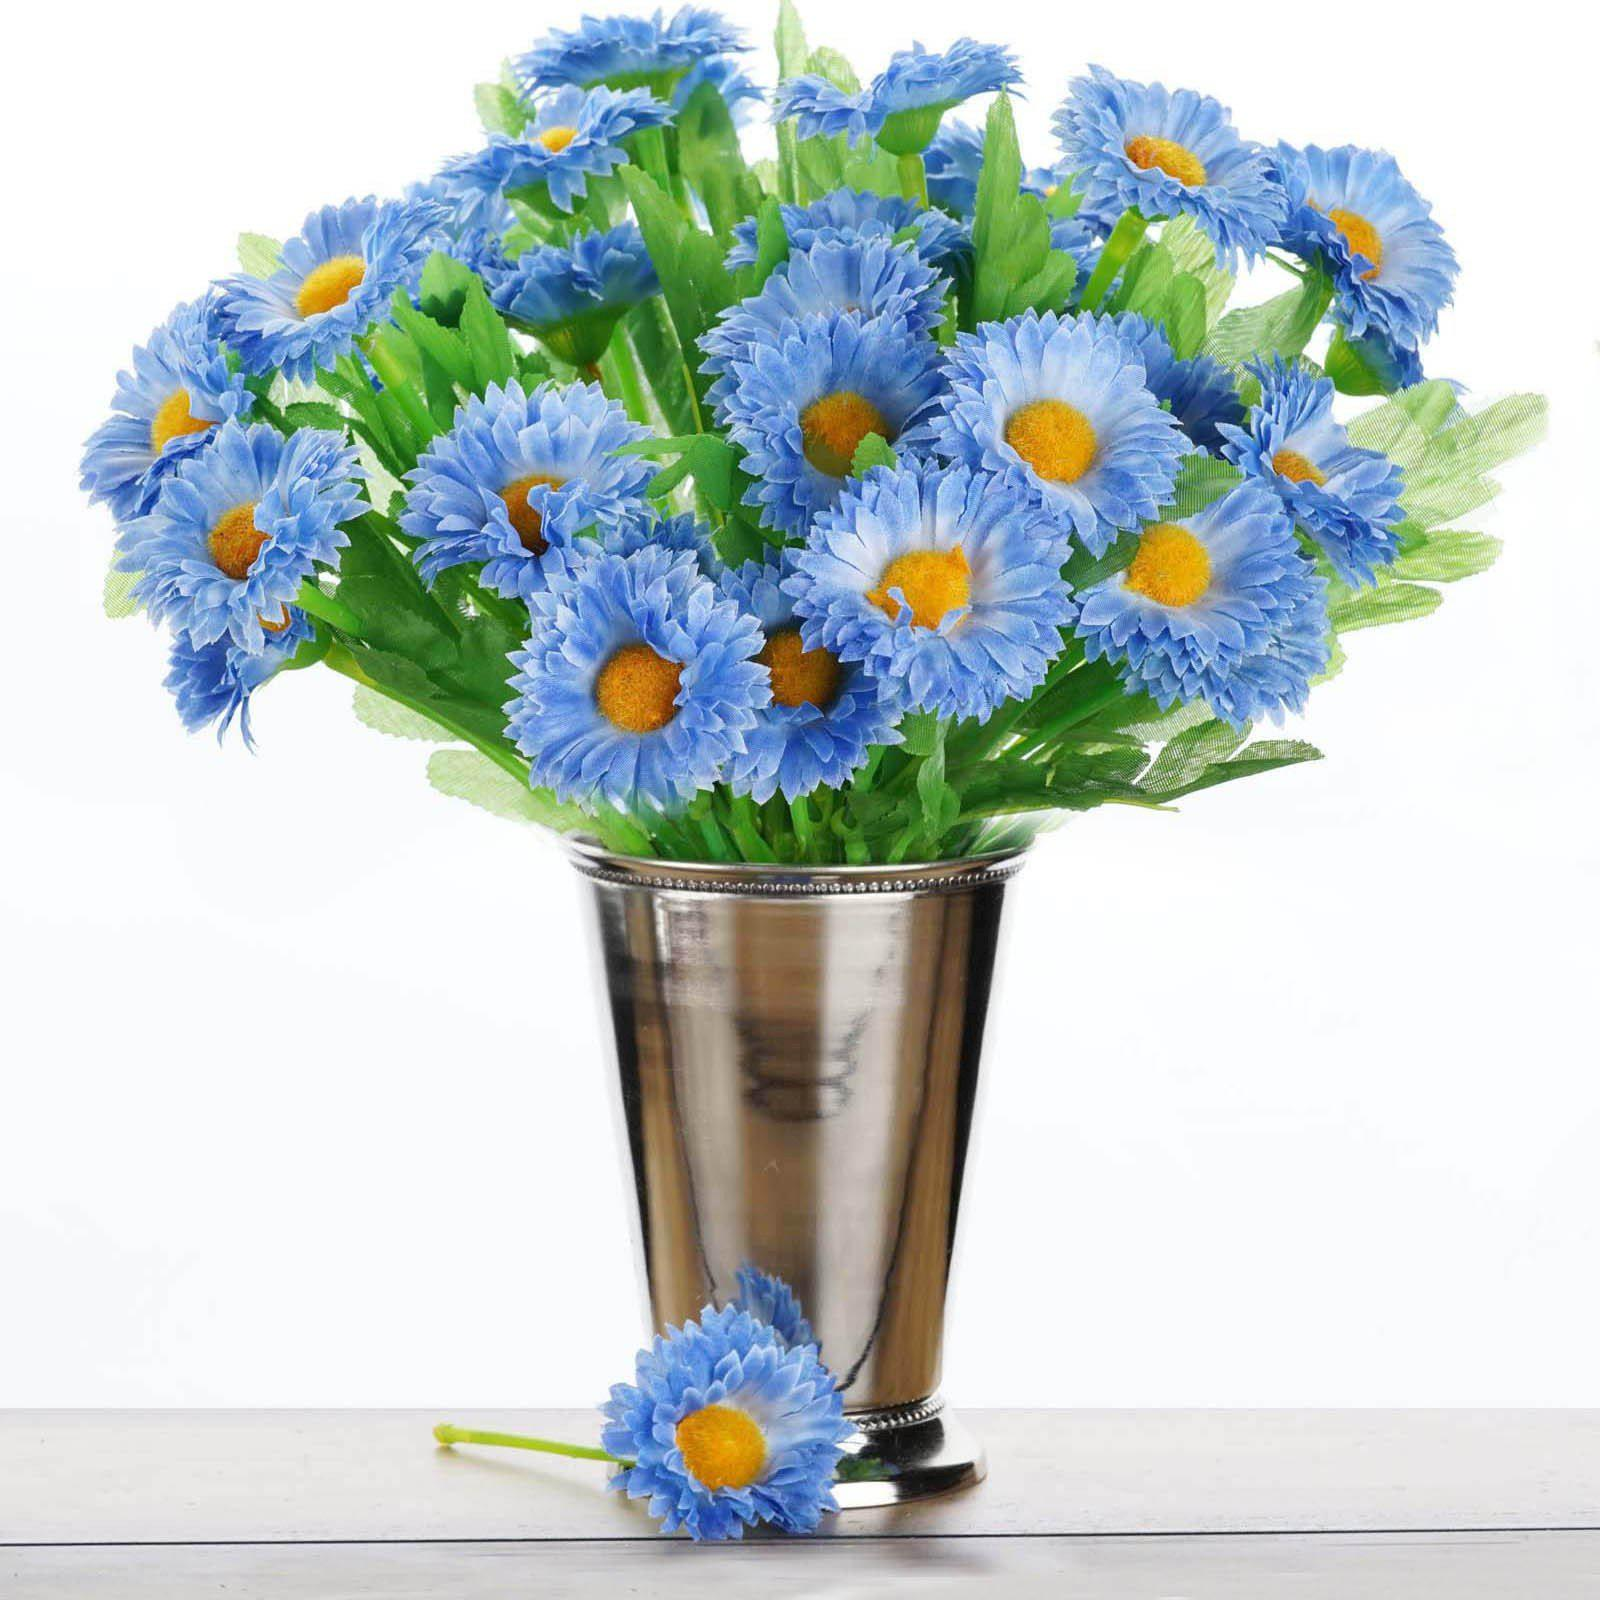 108 Wholesale Artificial Silk Daisy Flowers Wedding Vase